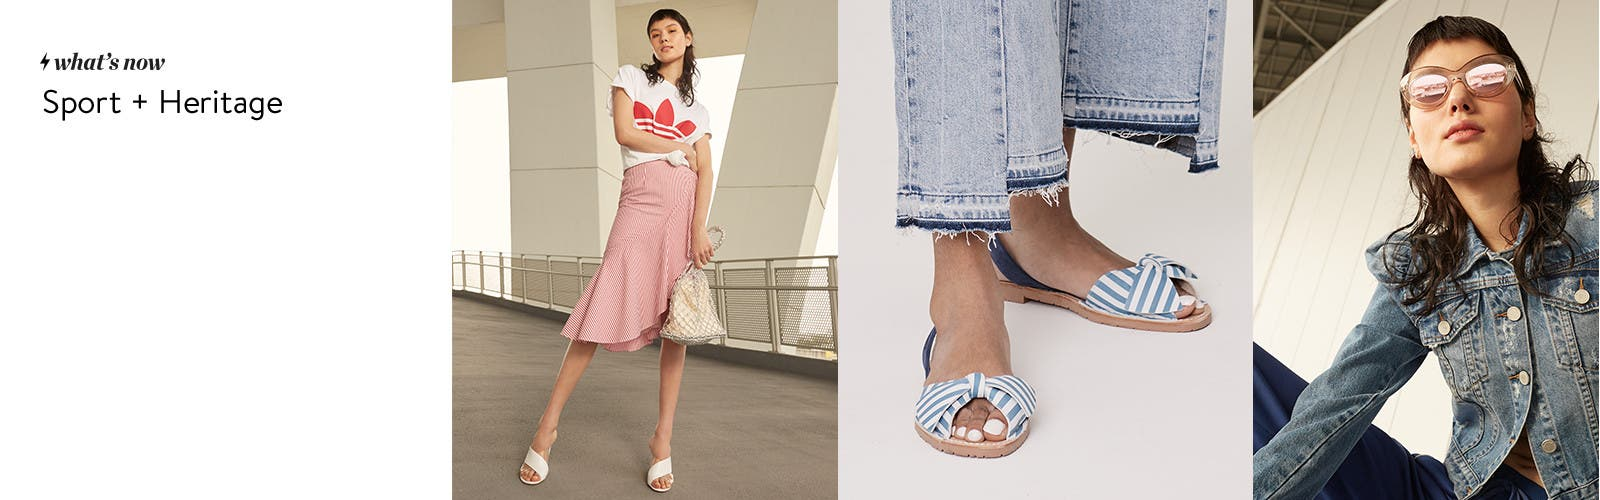 Sport plus heritage: Topshop and trend clothing, shoes, handbags and accessories.